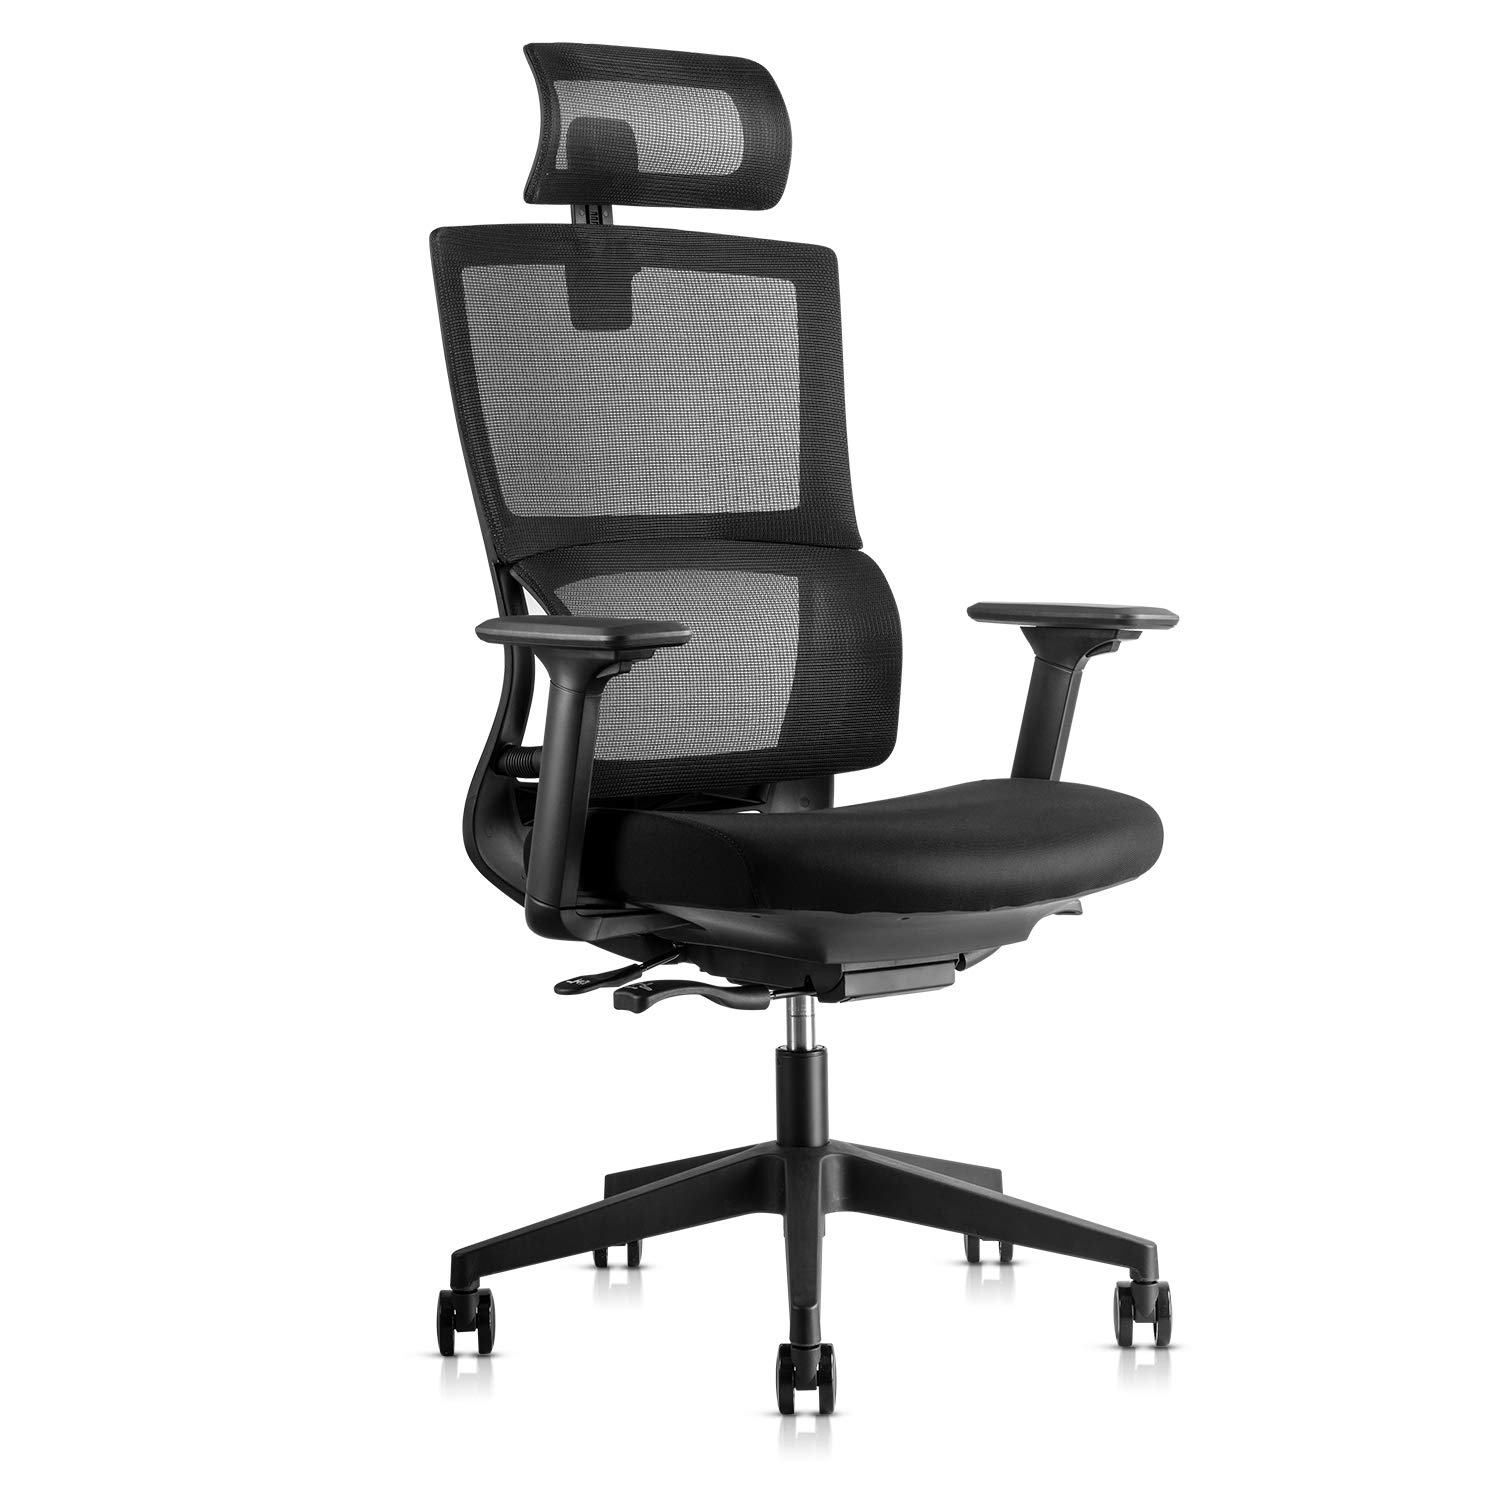 Adjustable Ergonomic Computer Office Chair, High-Back Desk Chair with Lumbar Support, Sliding Thick Seat, Breathable Mesh Back and 3D Armrest, Swivel Task Chair by Gabrylly